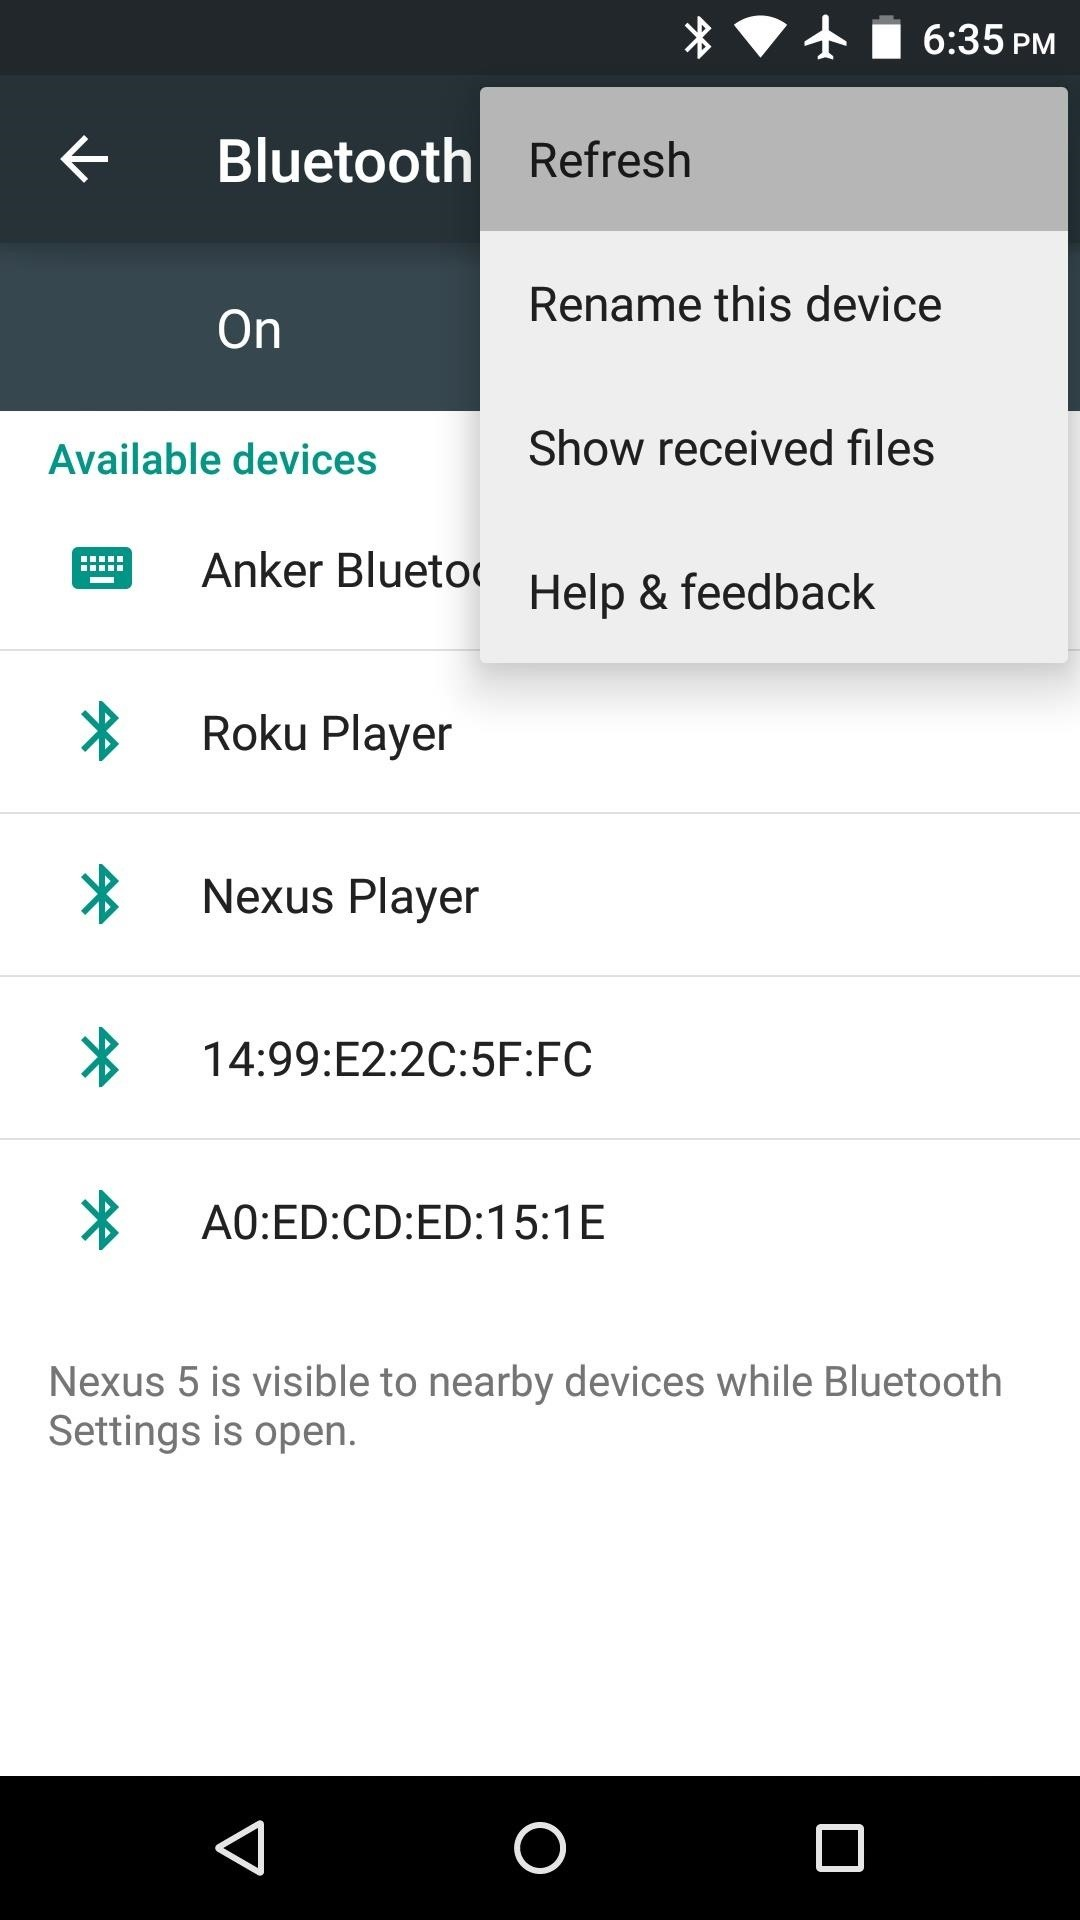 Android Basics: How to Connect to a Bluetooth Device